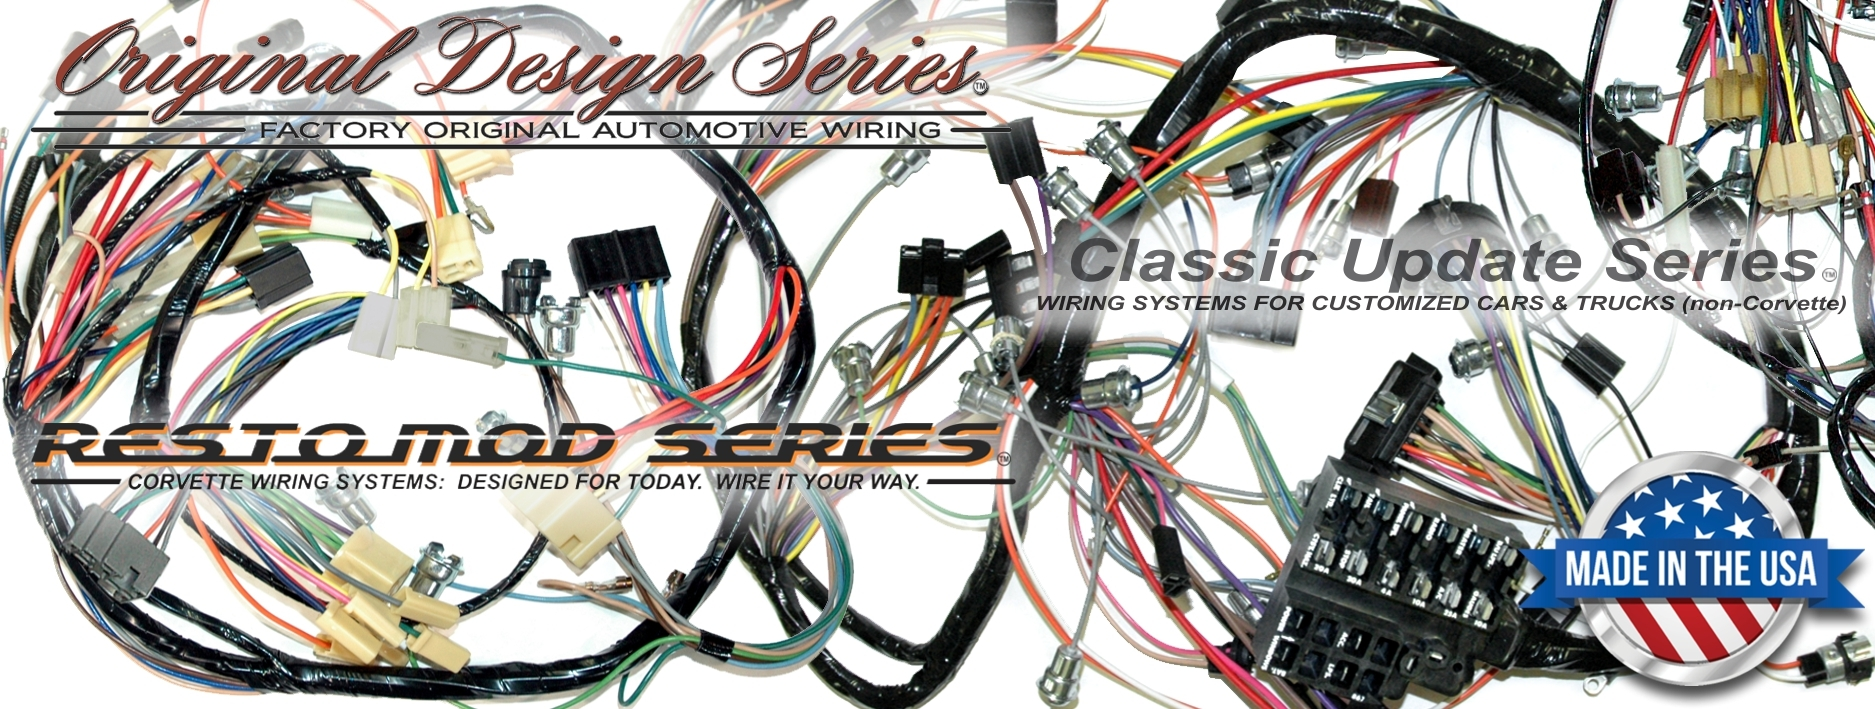 Exact Oem Reproduction Wiring Harnesses And Restomod Systems Painless Dodge Harness Individual Complete